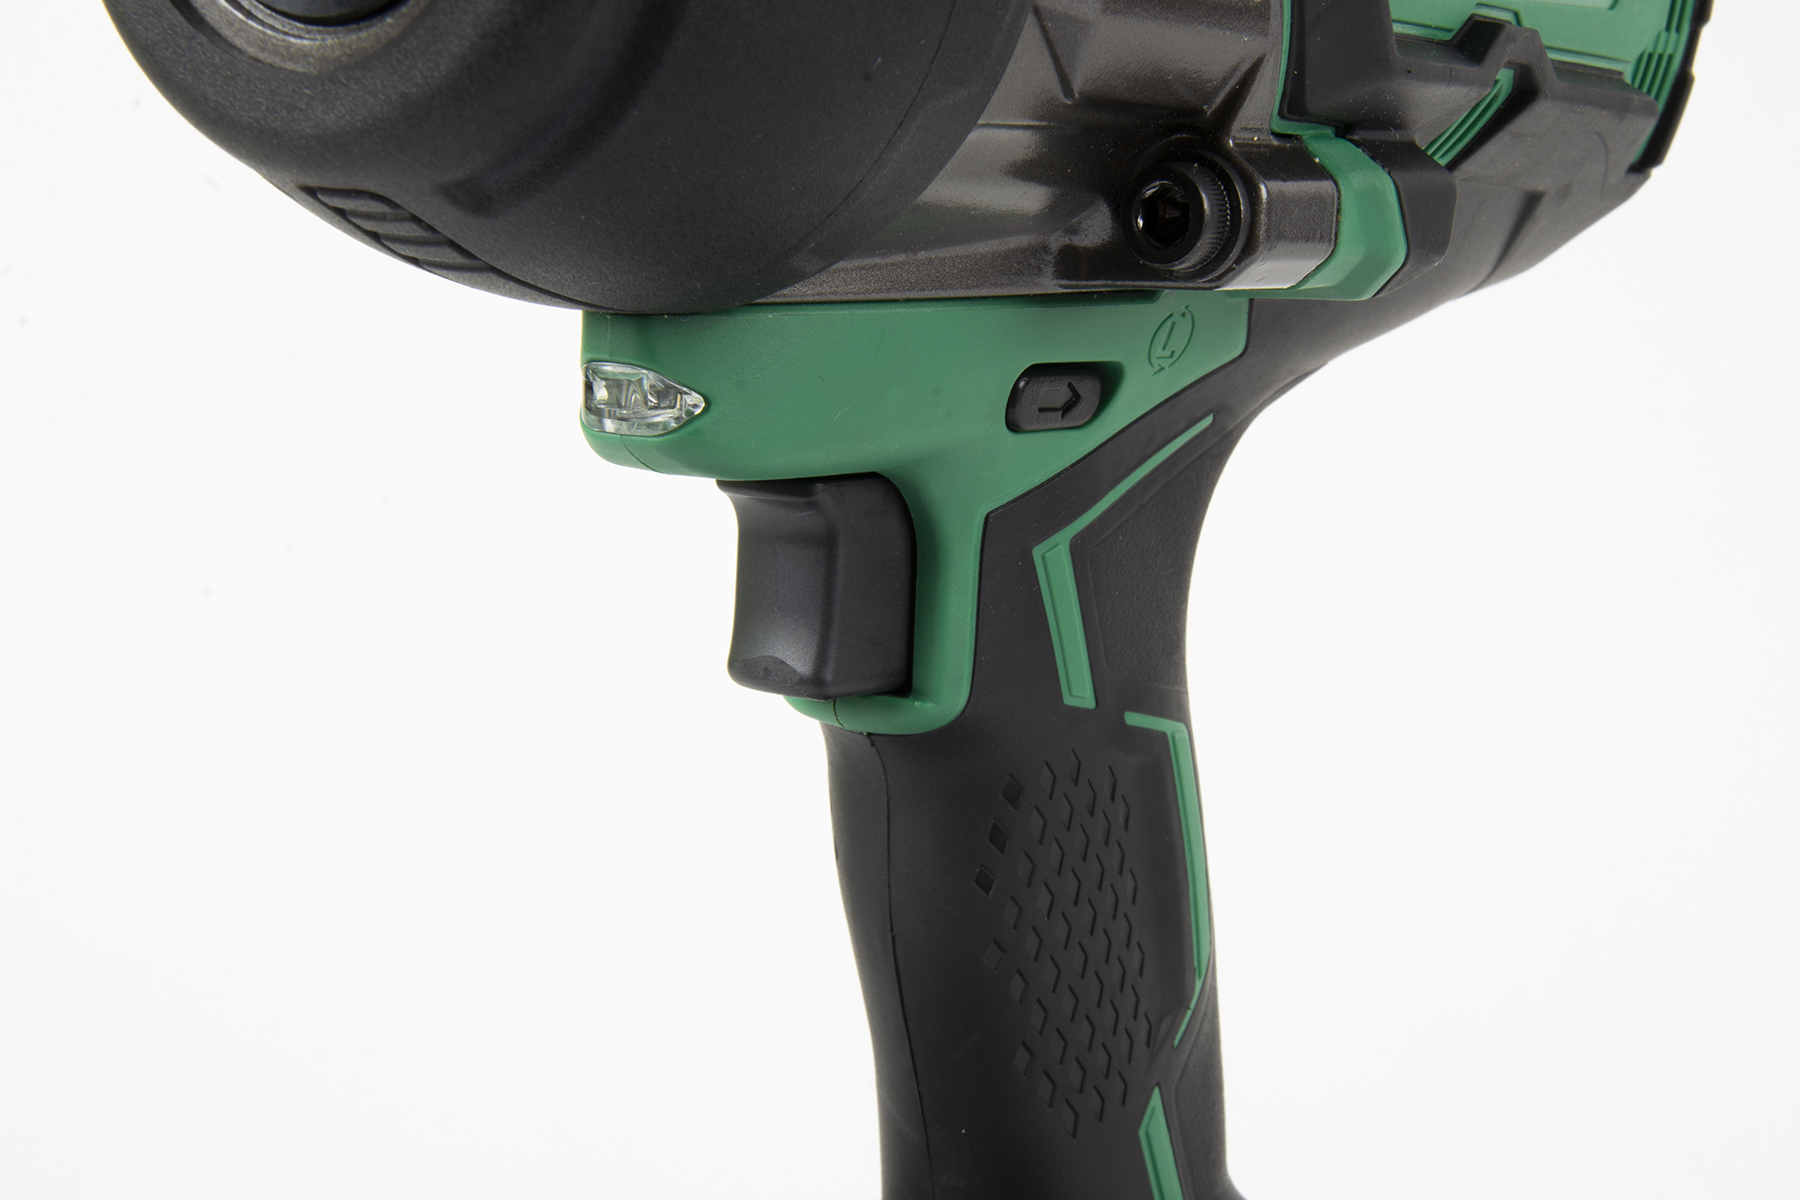 MultiVolt 3/4-in High-Torque Impact Wrench DETAIL 2